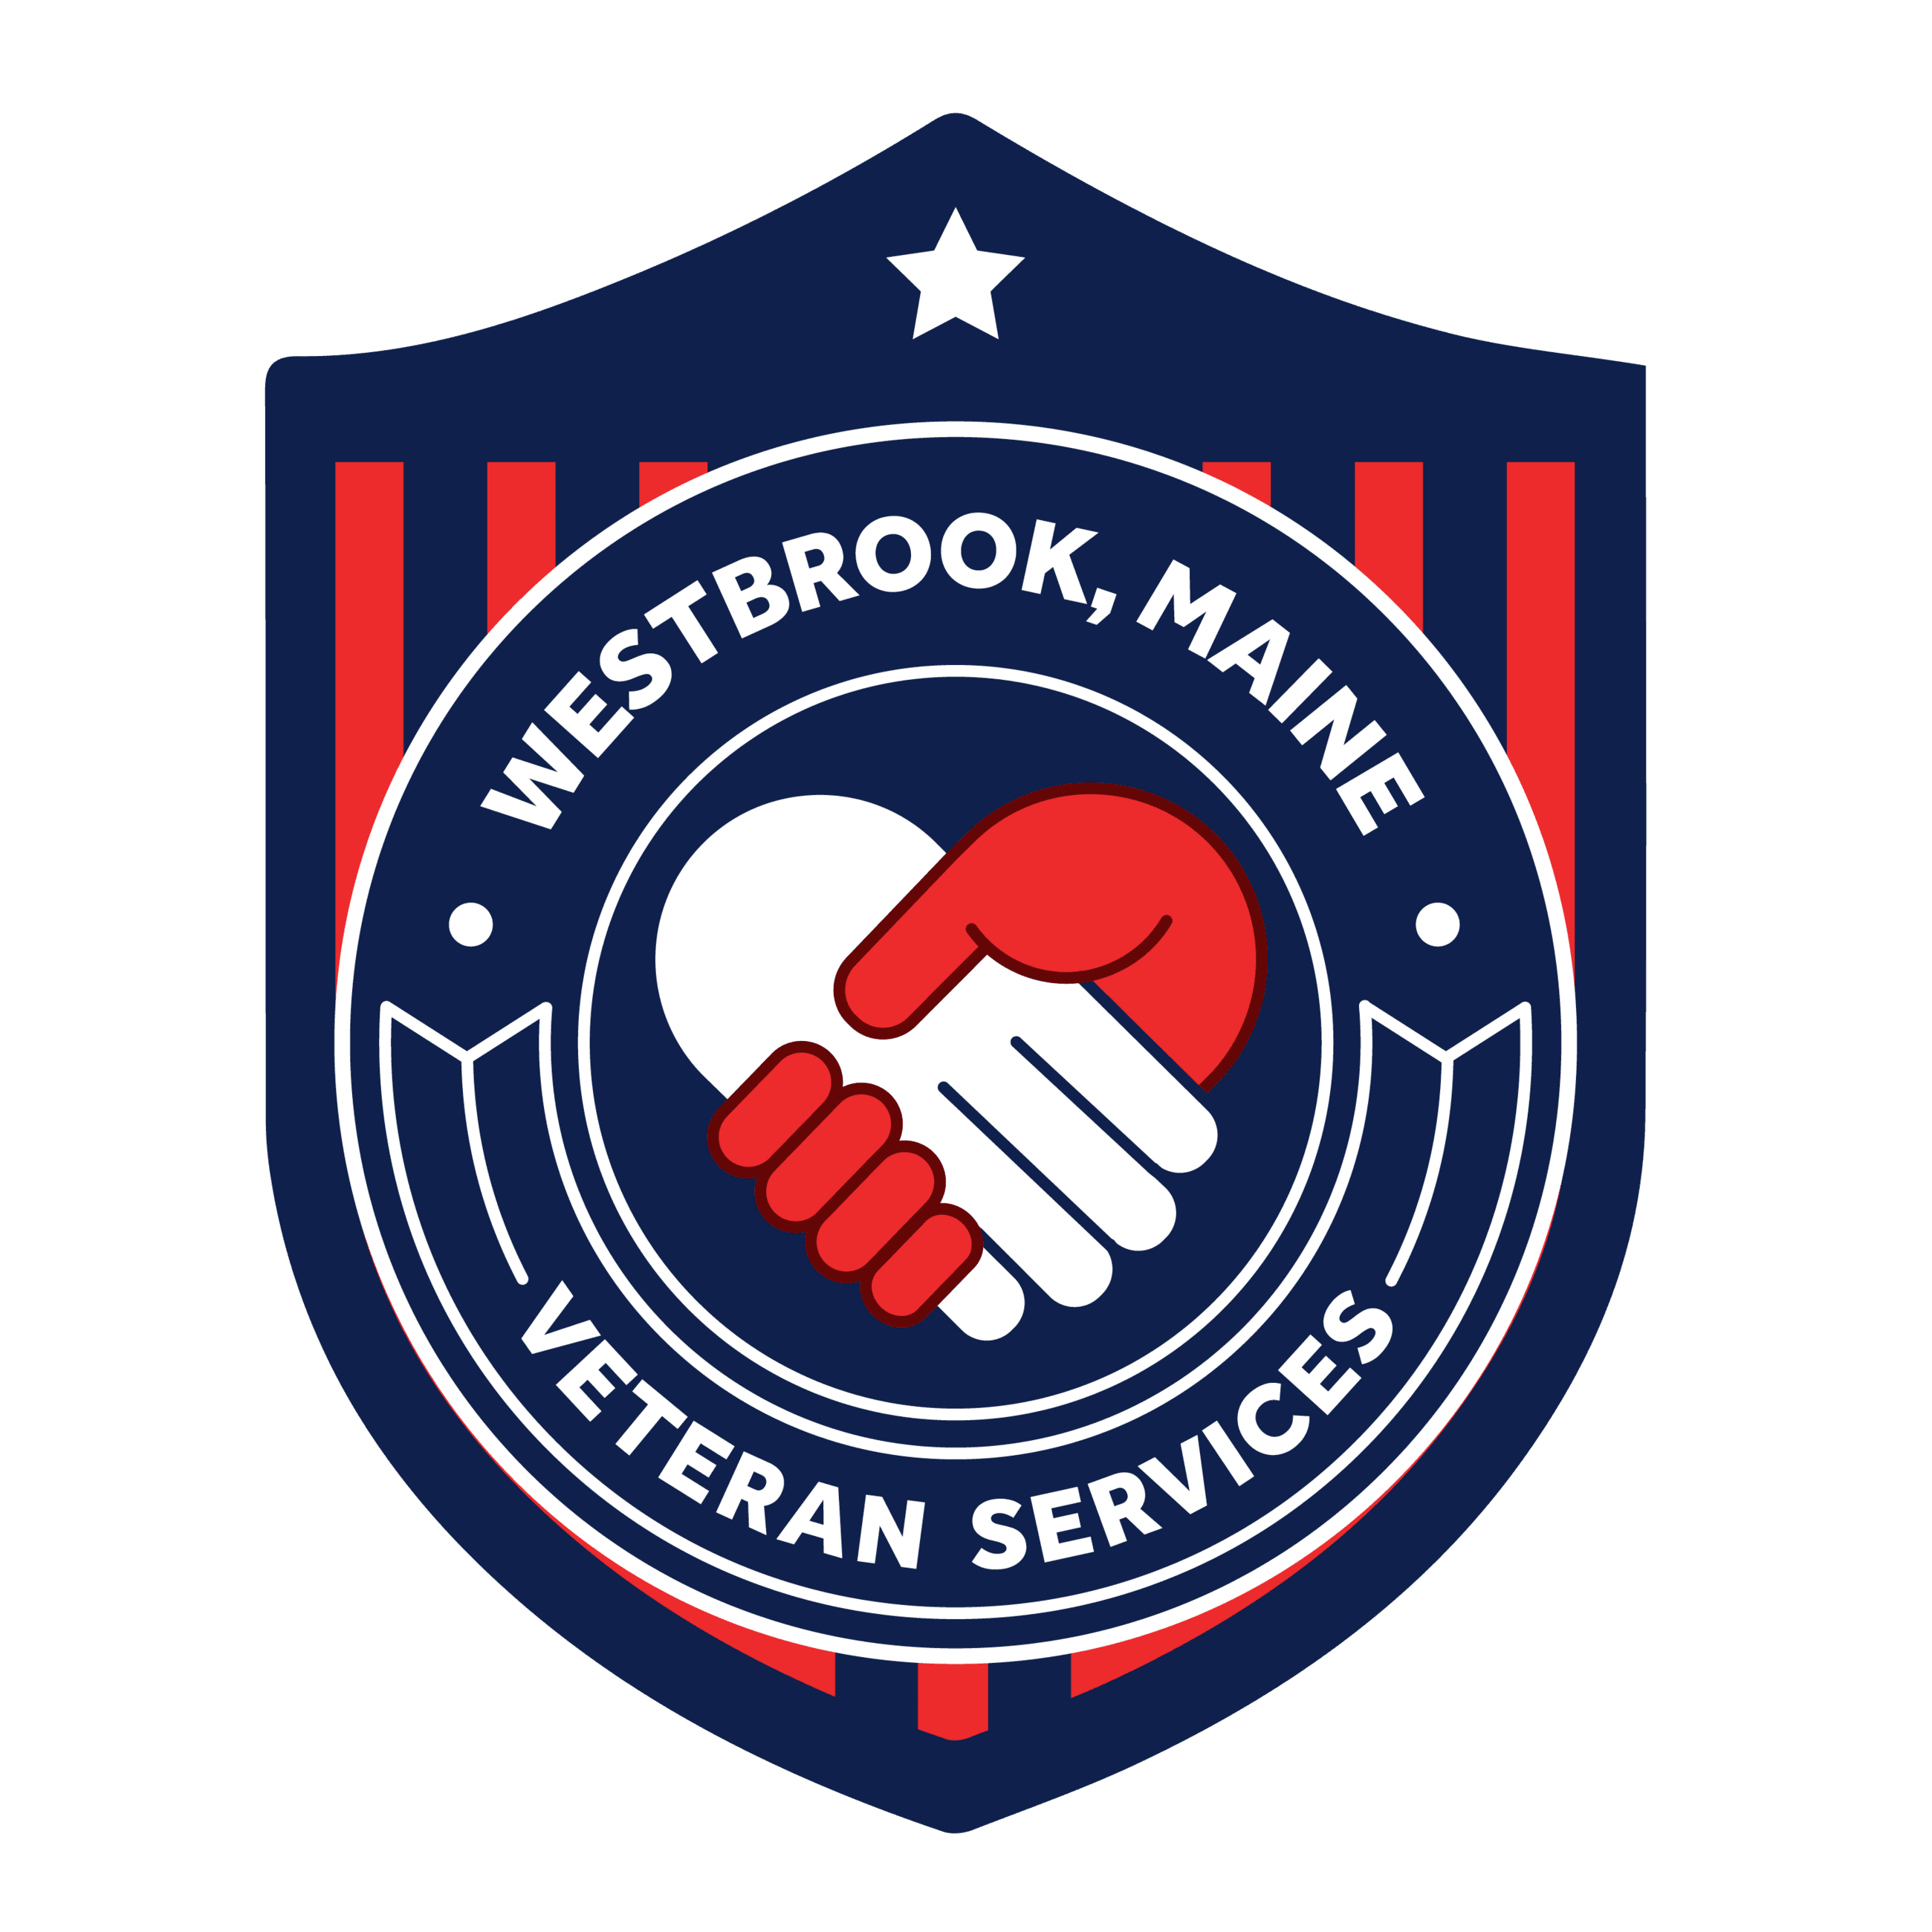 Westbrook Veteran Services